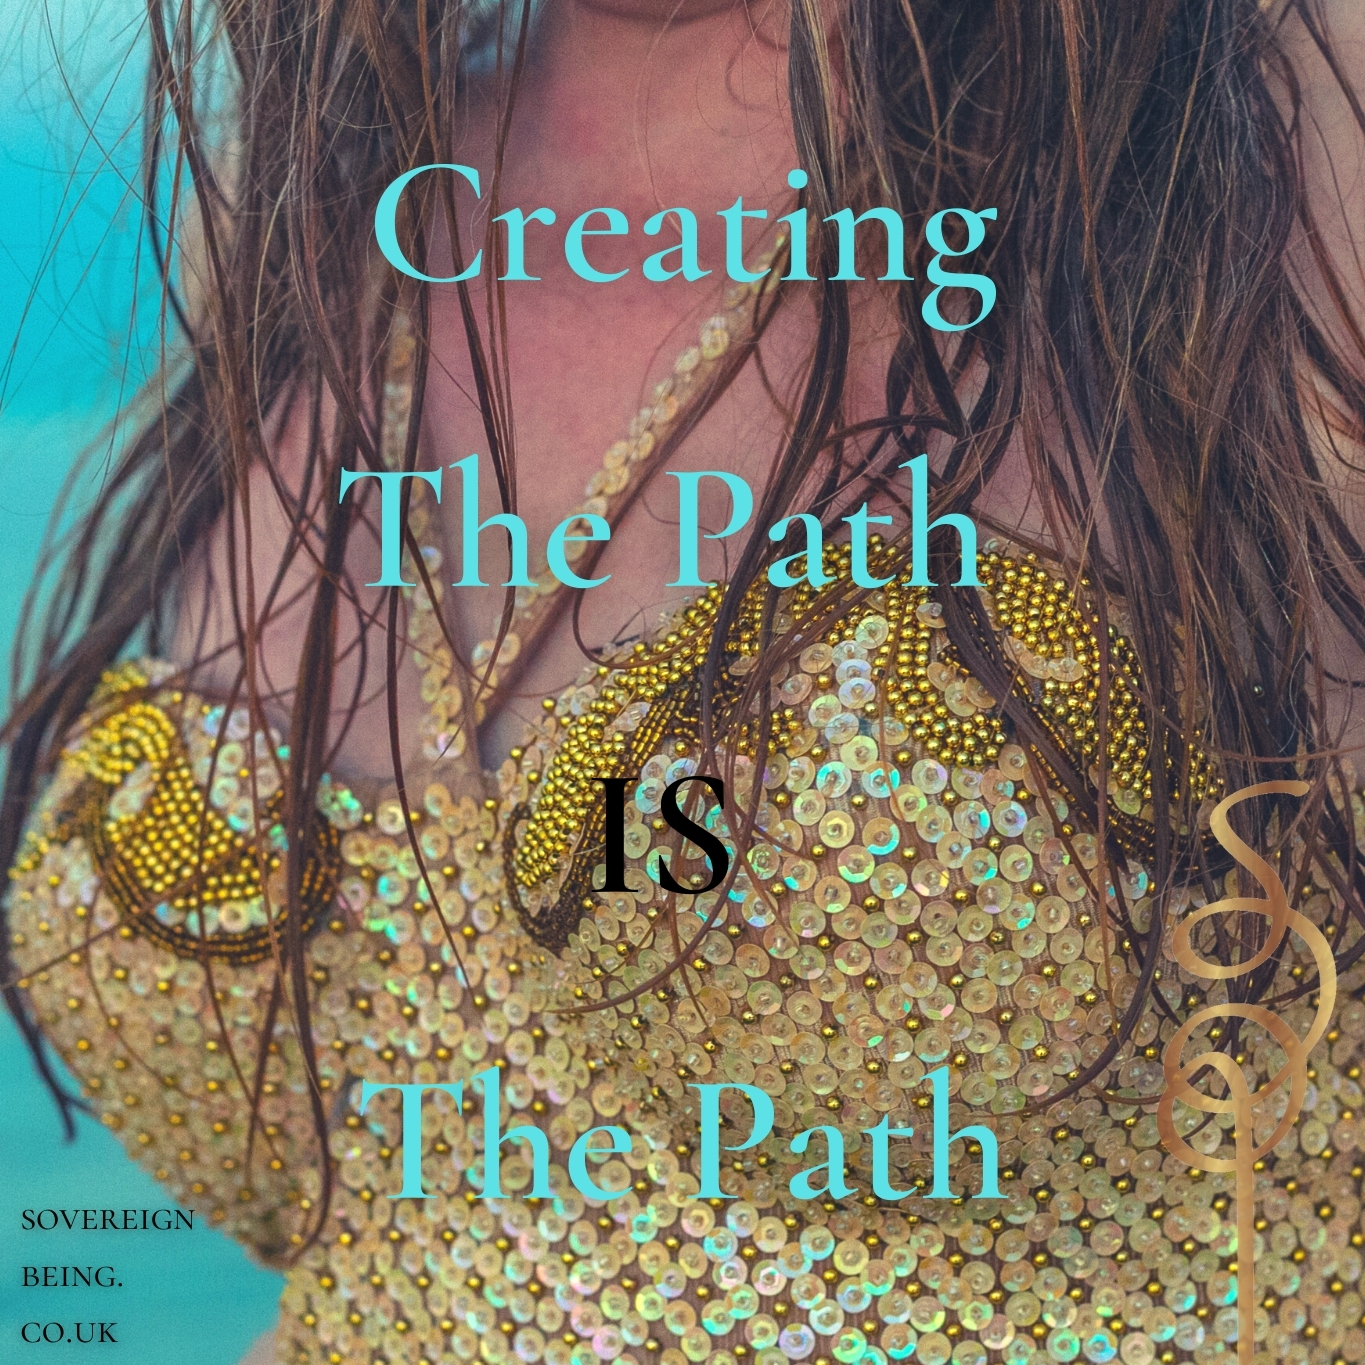 Creating the path is the path